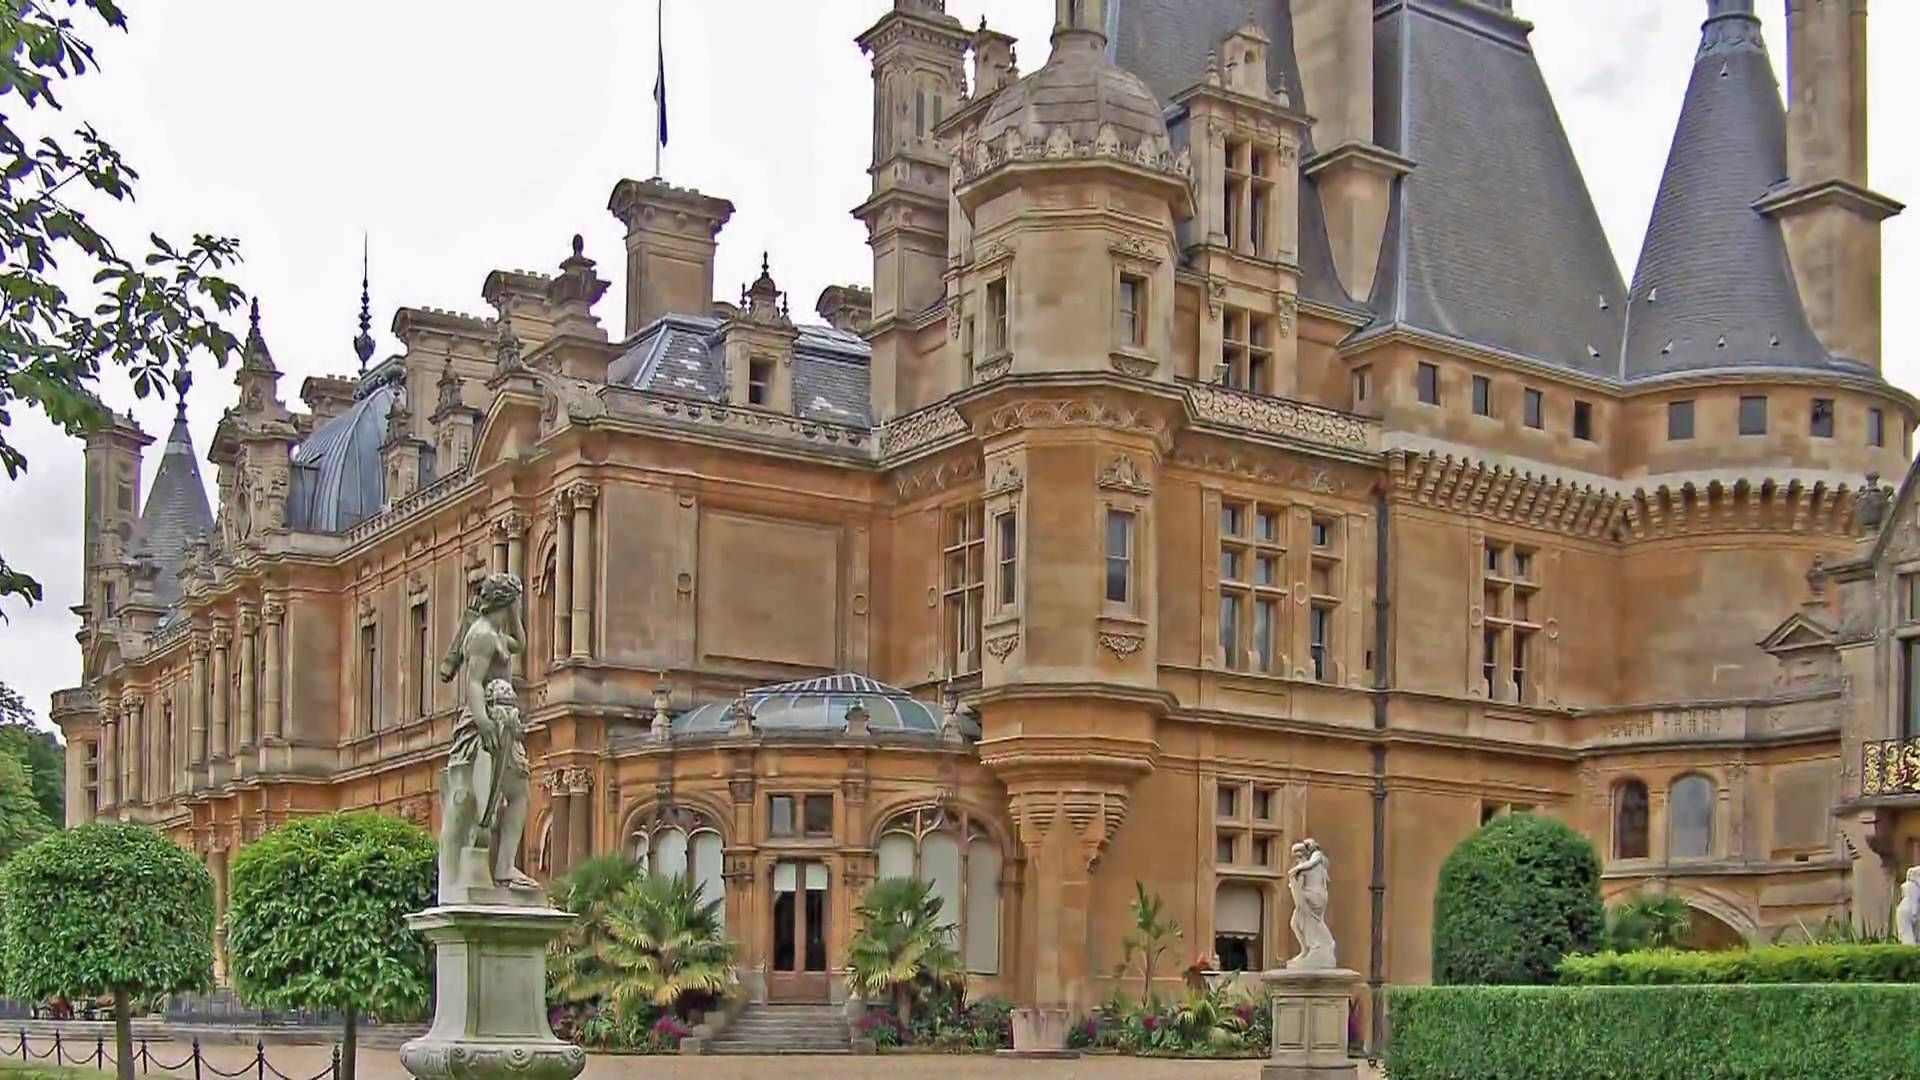 Best Kitchen Gallery: Waddesdon Manor An 1870's French Renaissance Chateau In England's of English Renaissance Architecture on rachelxblog.com